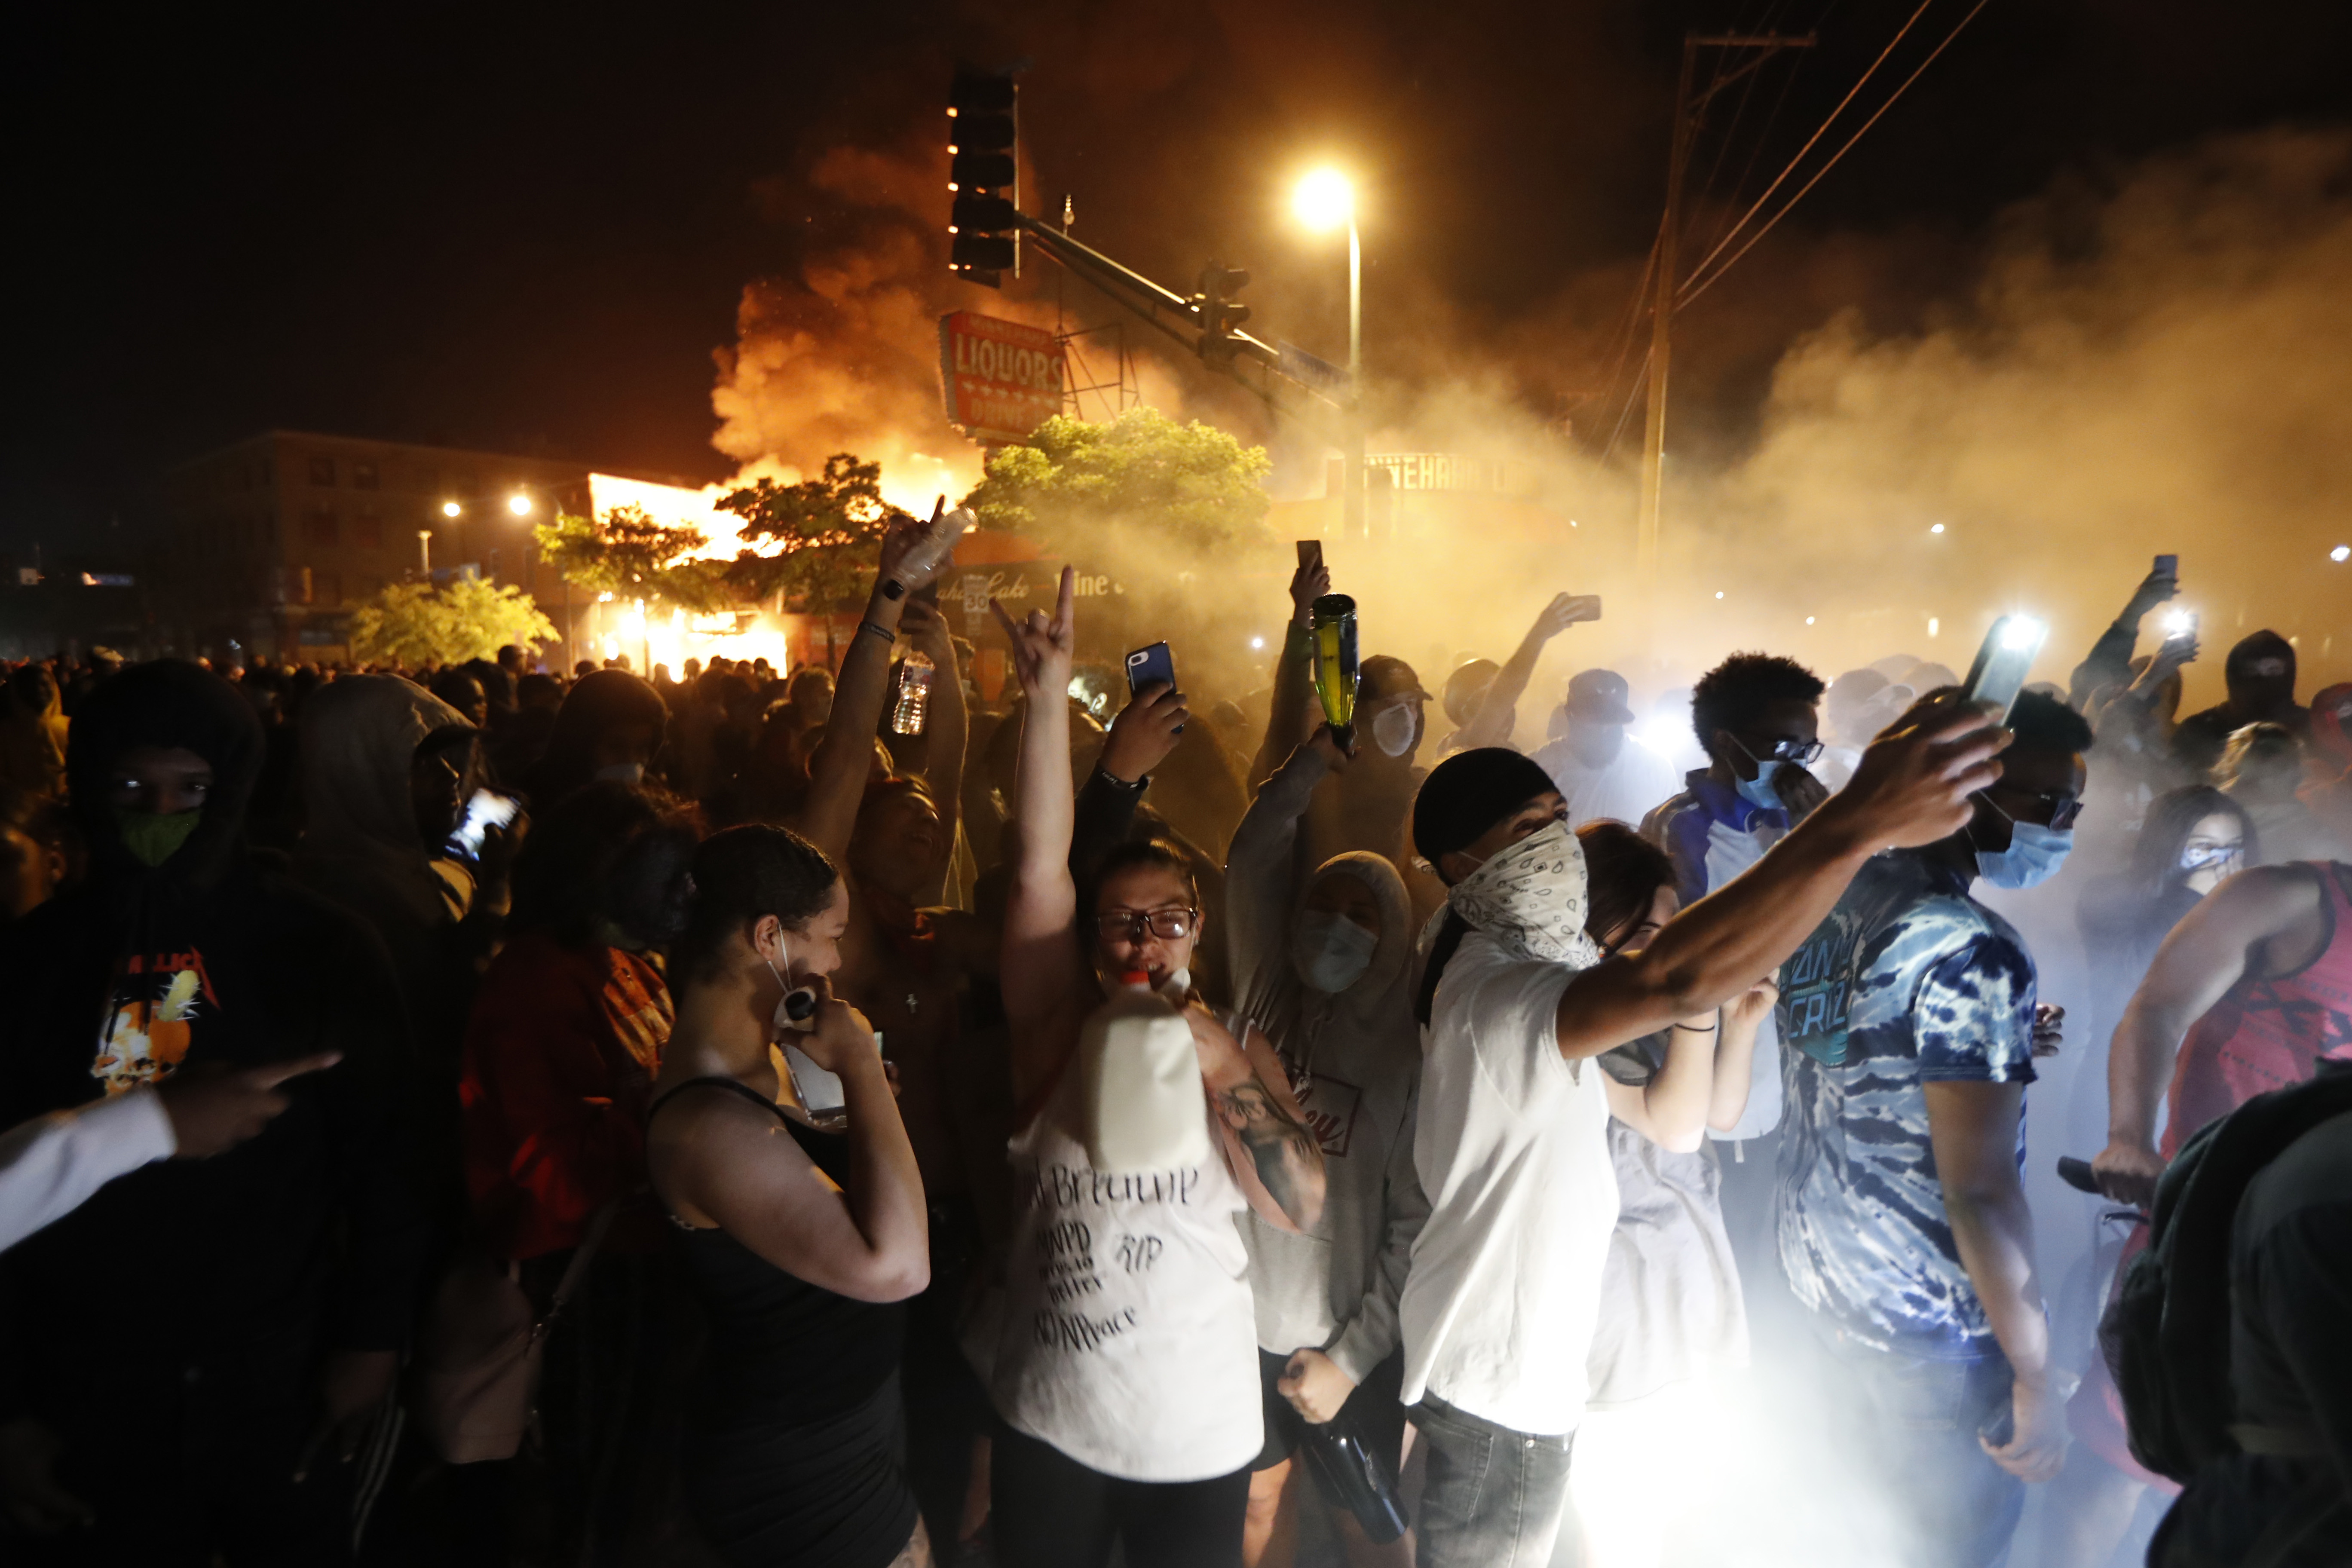 Protesters gather in front of the burning 3rd Precinct building of the Minneapolis Police Department on Thursday, May 28, 2020, in Minneapolis. (AP Photo/John Minchillo)